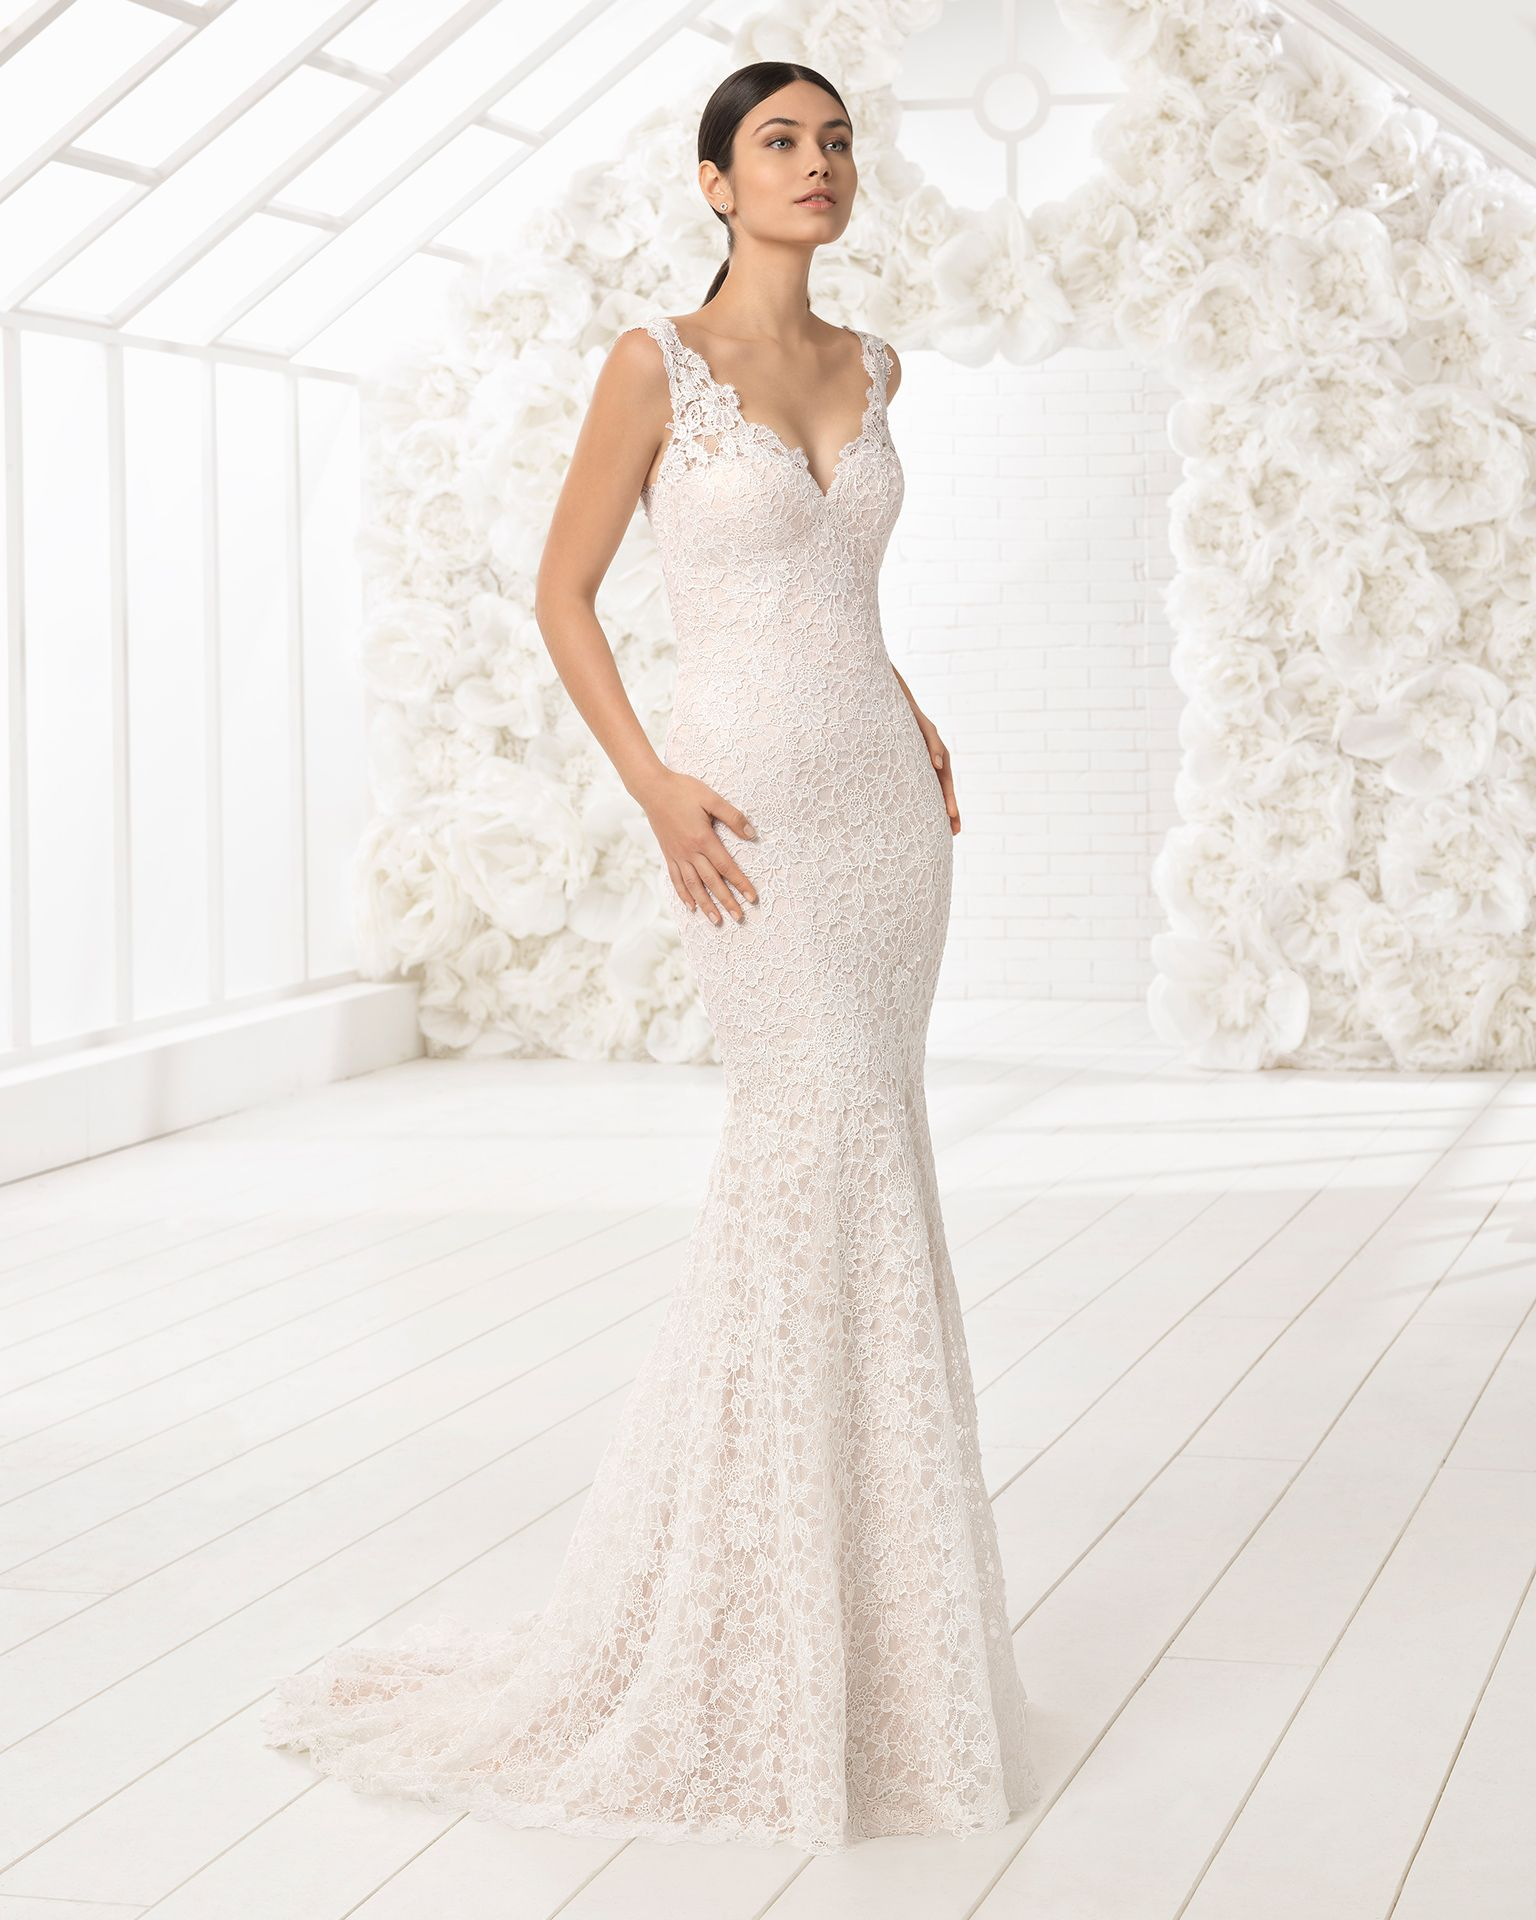 3caa5209f03 Mermaid-style lace wedding dress with low back. 2018 Rosa Clará Soft  Collection.